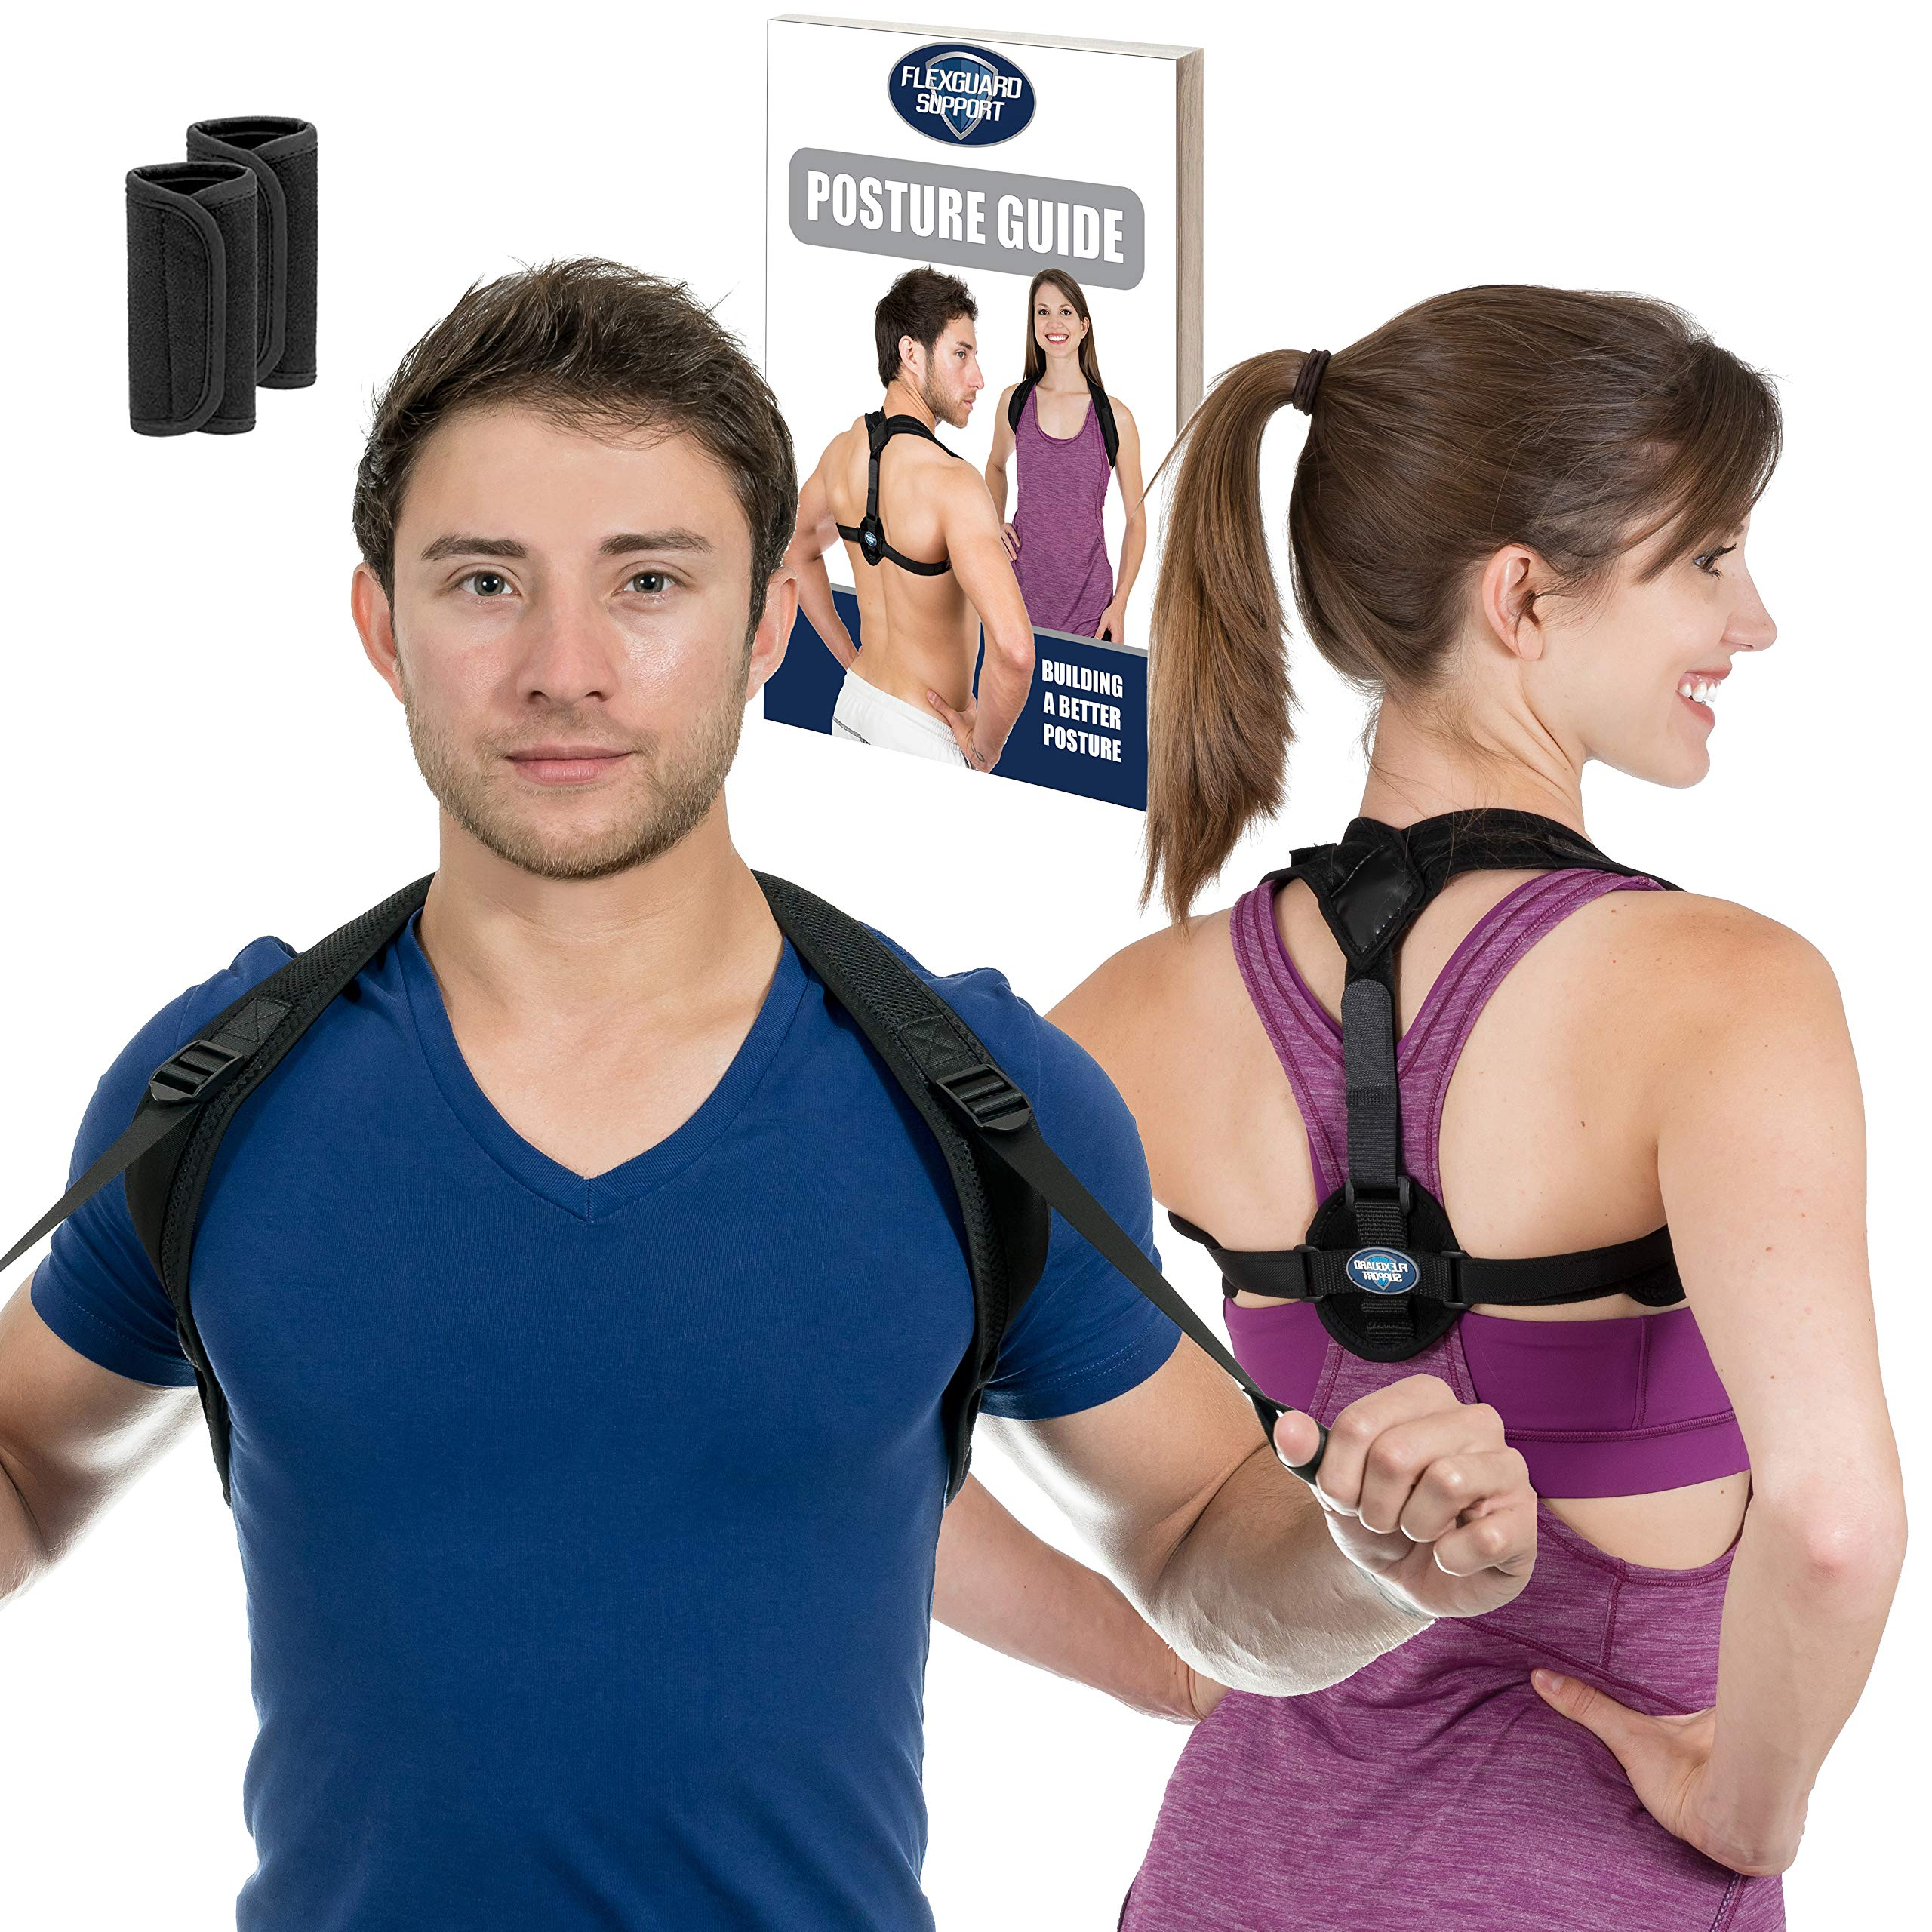 df227b8357 Amazon.com  Posture Corrector for Women and Men